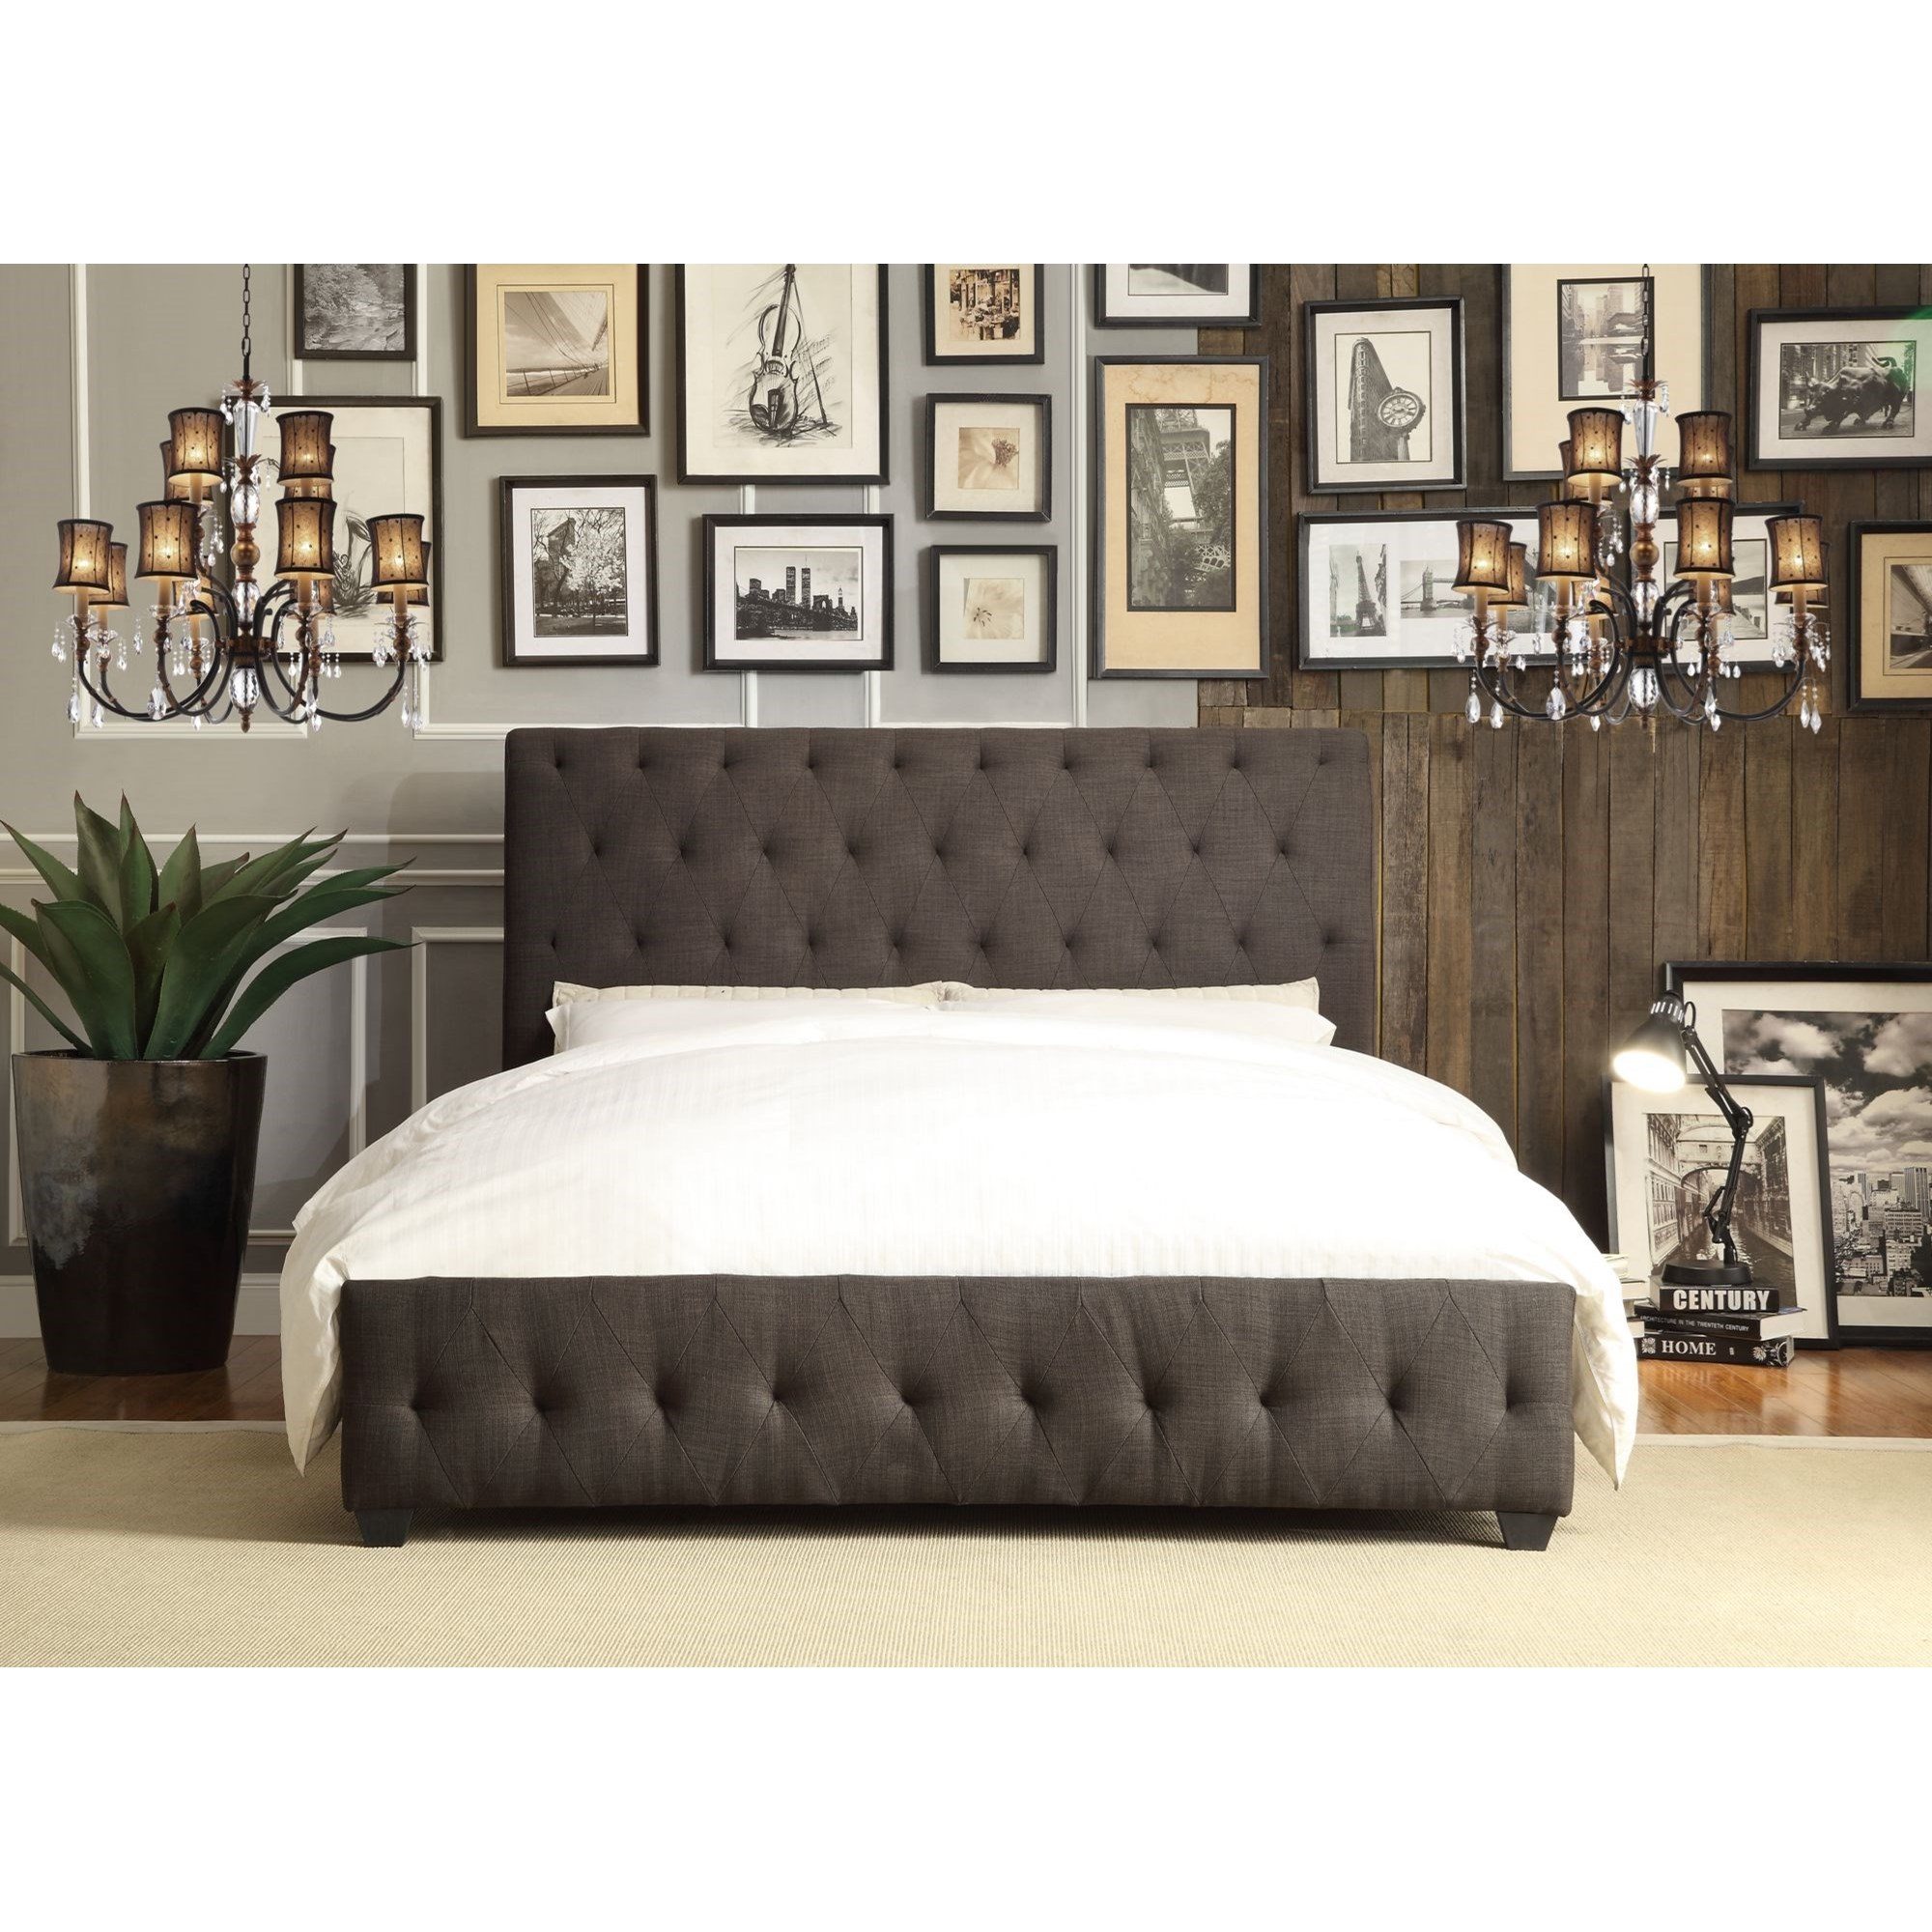 Baldwyn Contemporary Queen Upholstered Sleigh Bed by Homelegance at Darvin Furniture